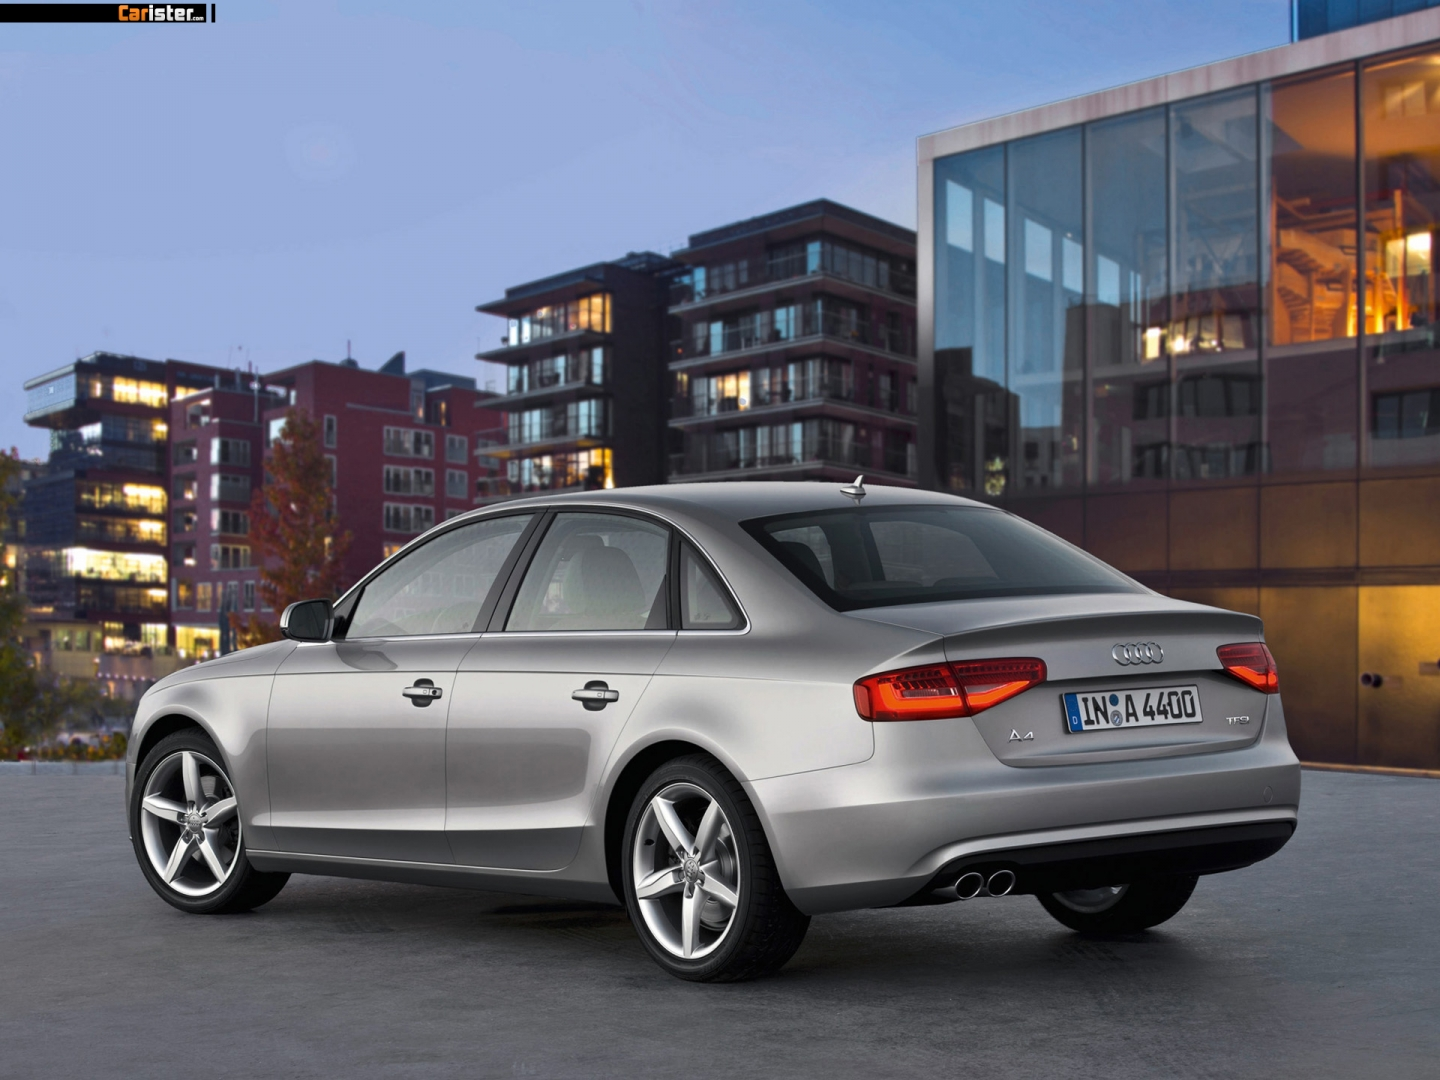 Audi A4 2012 - Photo 20 - Taille: 1440x1080